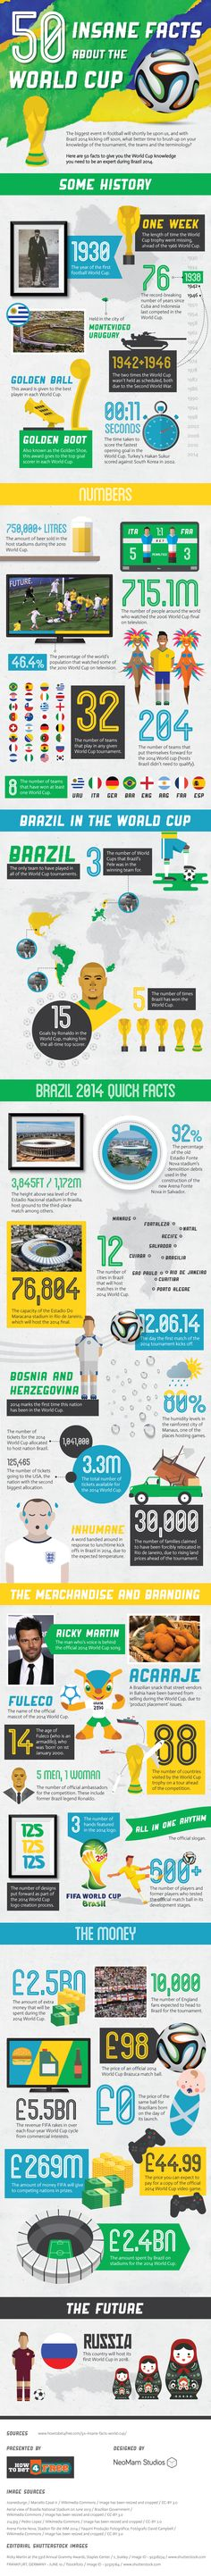 50 Insane Facts about the #WorldCup